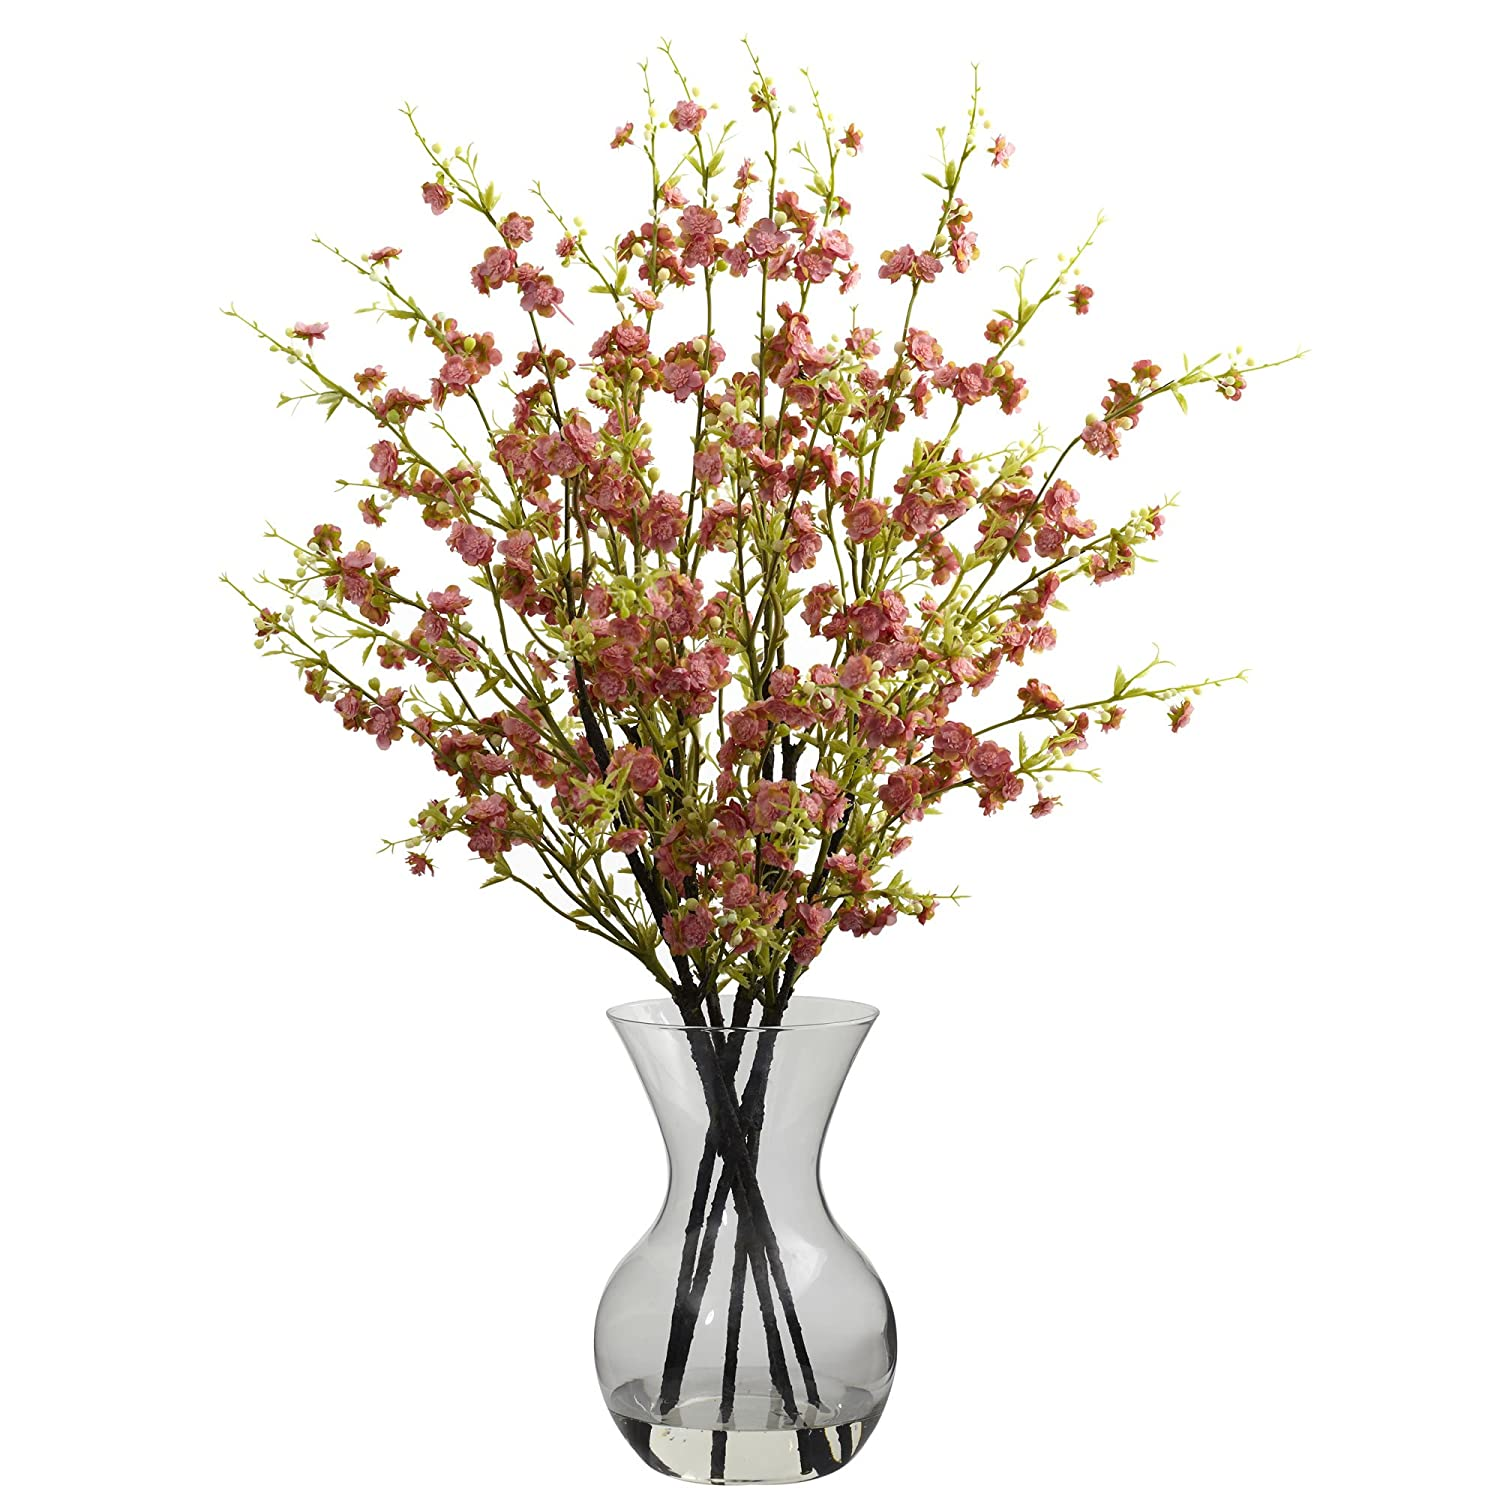 Amazon nearly natural 1315 pk cherry blossoms with vase amazon nearly natural 1315 pk cherry blossoms with vase arrangement pink home kitchen dhlflorist Image collections